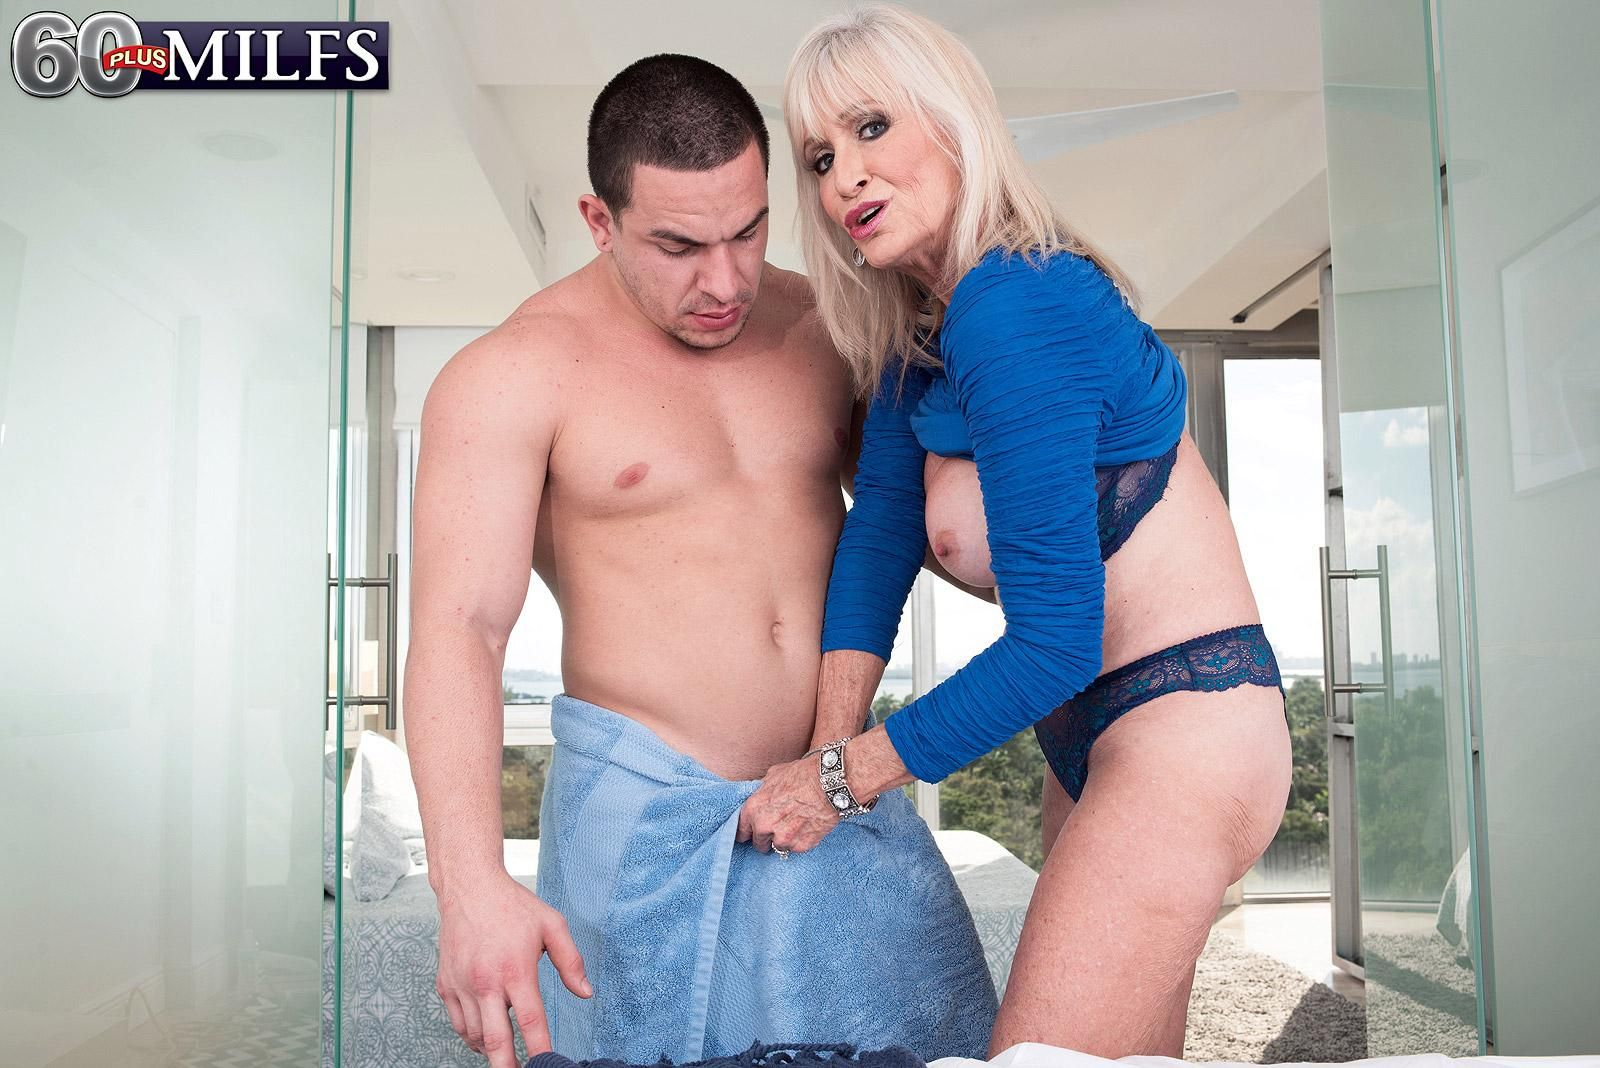 Over 60 MILF Leah L'Amour seduces a younger guy with her big tits